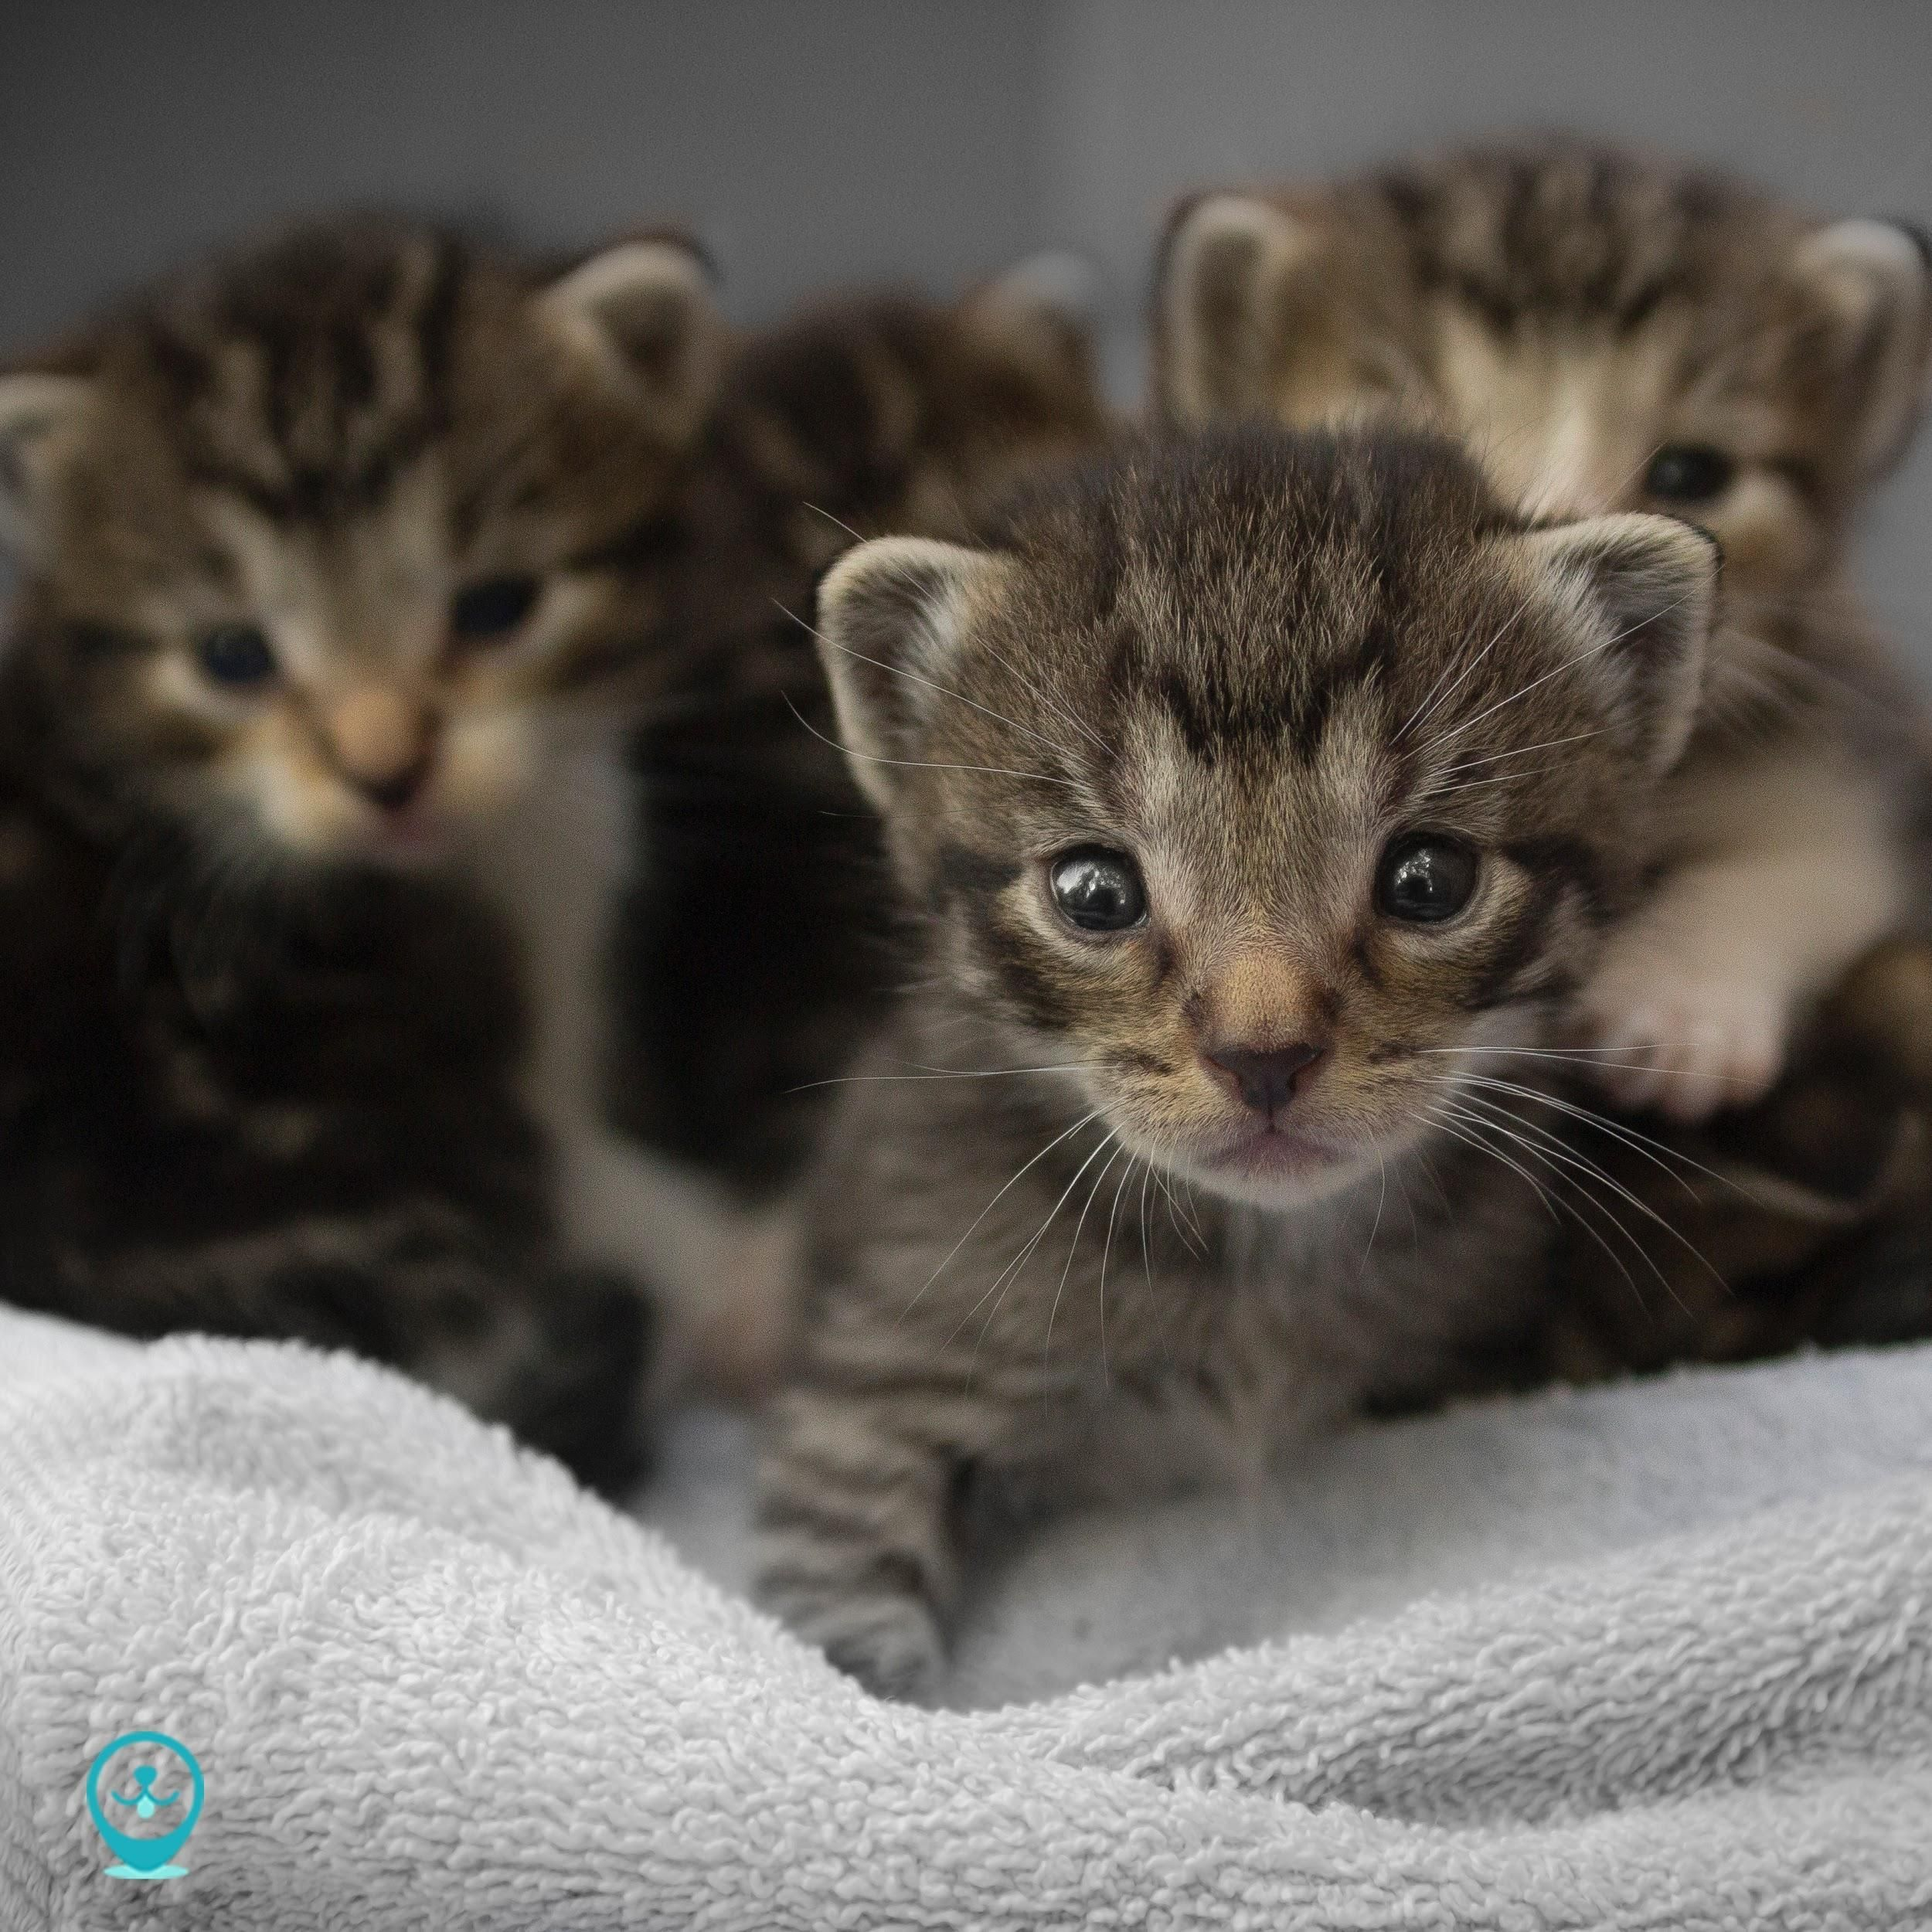 There S Nothing Cuter Than Newborn Kittens Right You Might Actually Think This Is Cuter Catbreed Kittens Cutest Kittens Baby Animals